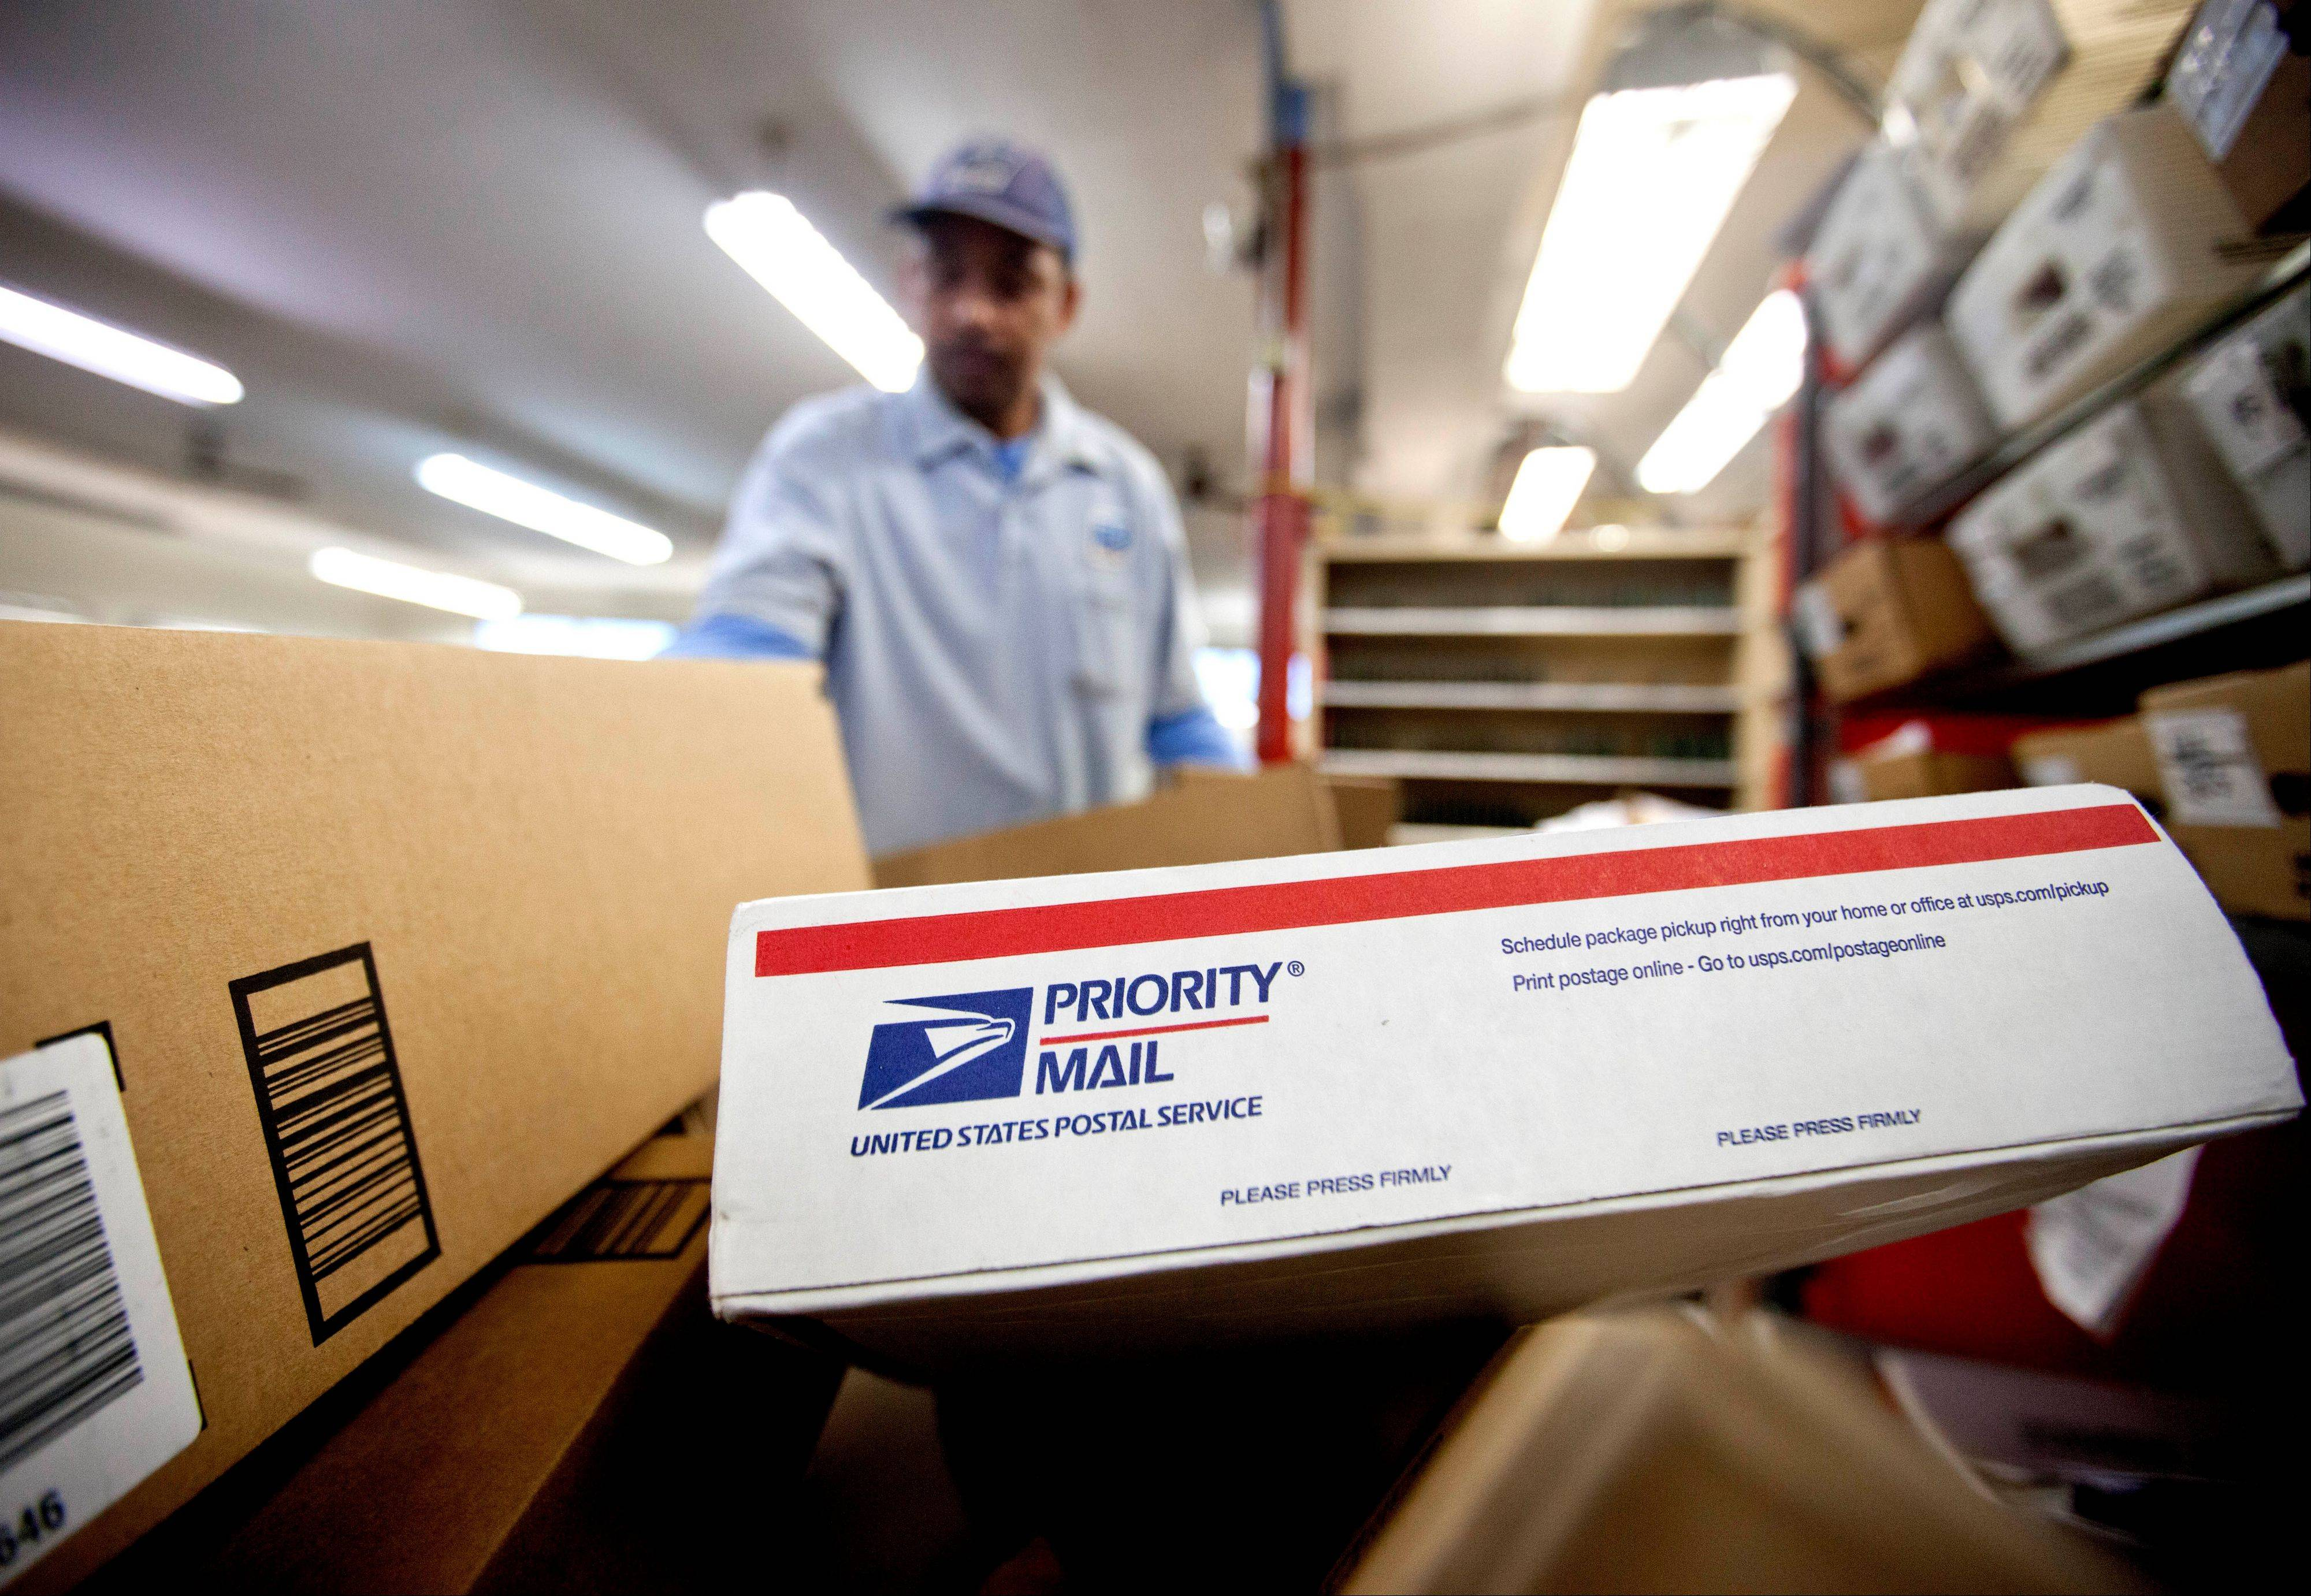 The financially struggling U.S. Postal Service said Wednesday it is revamping its priority mail program as part of its efforts to raise revenue and drive new growth in its package delivery business.